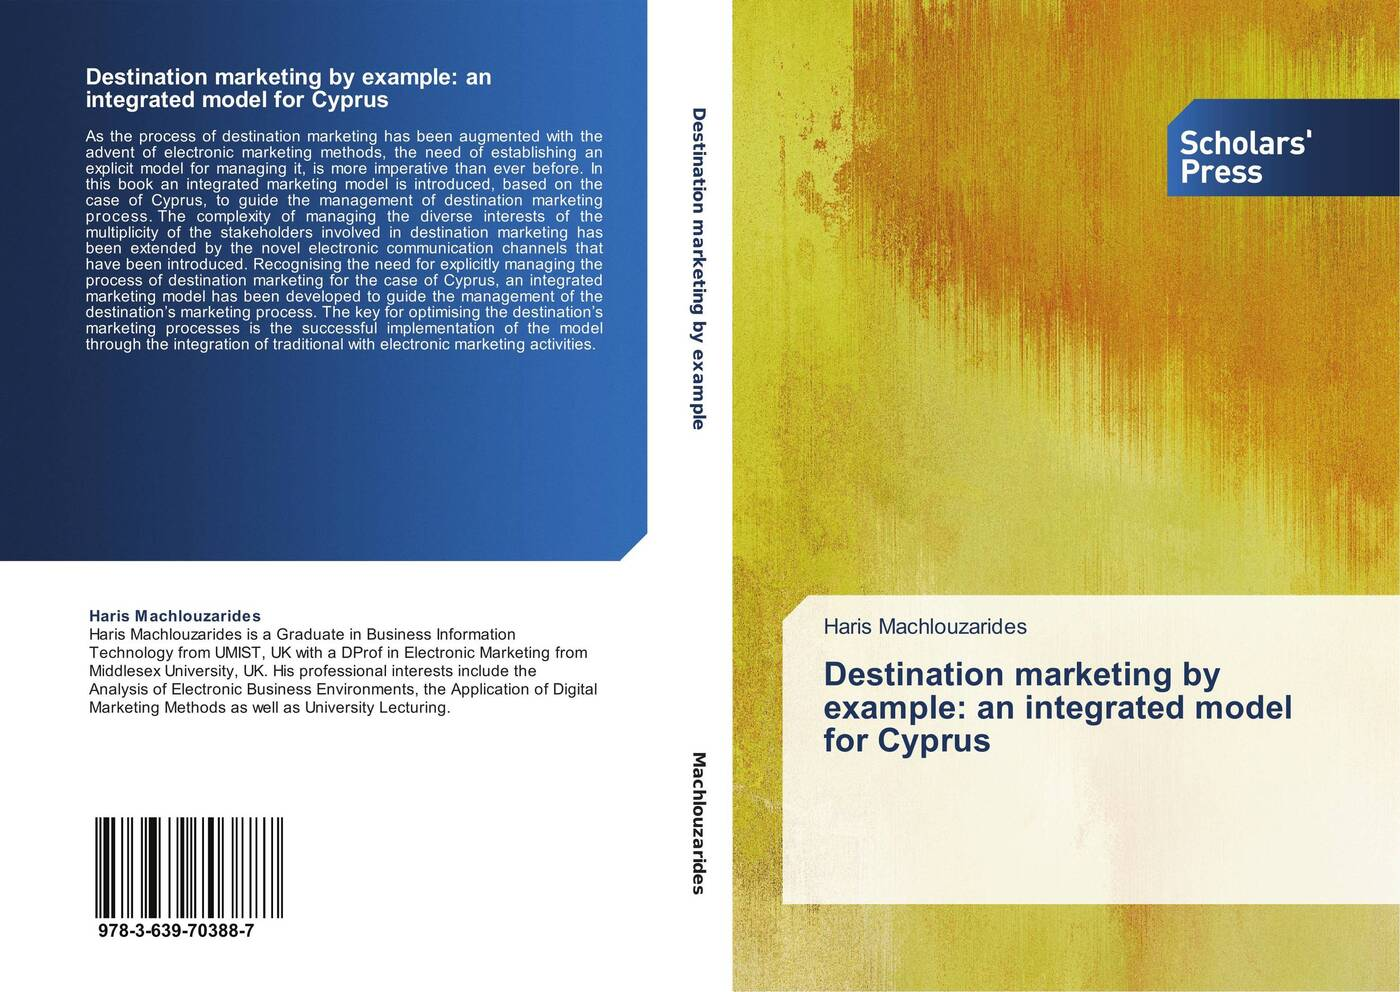 цена на Haris Machlouzarides Destination marketing by example: an integrated model for Cyprus